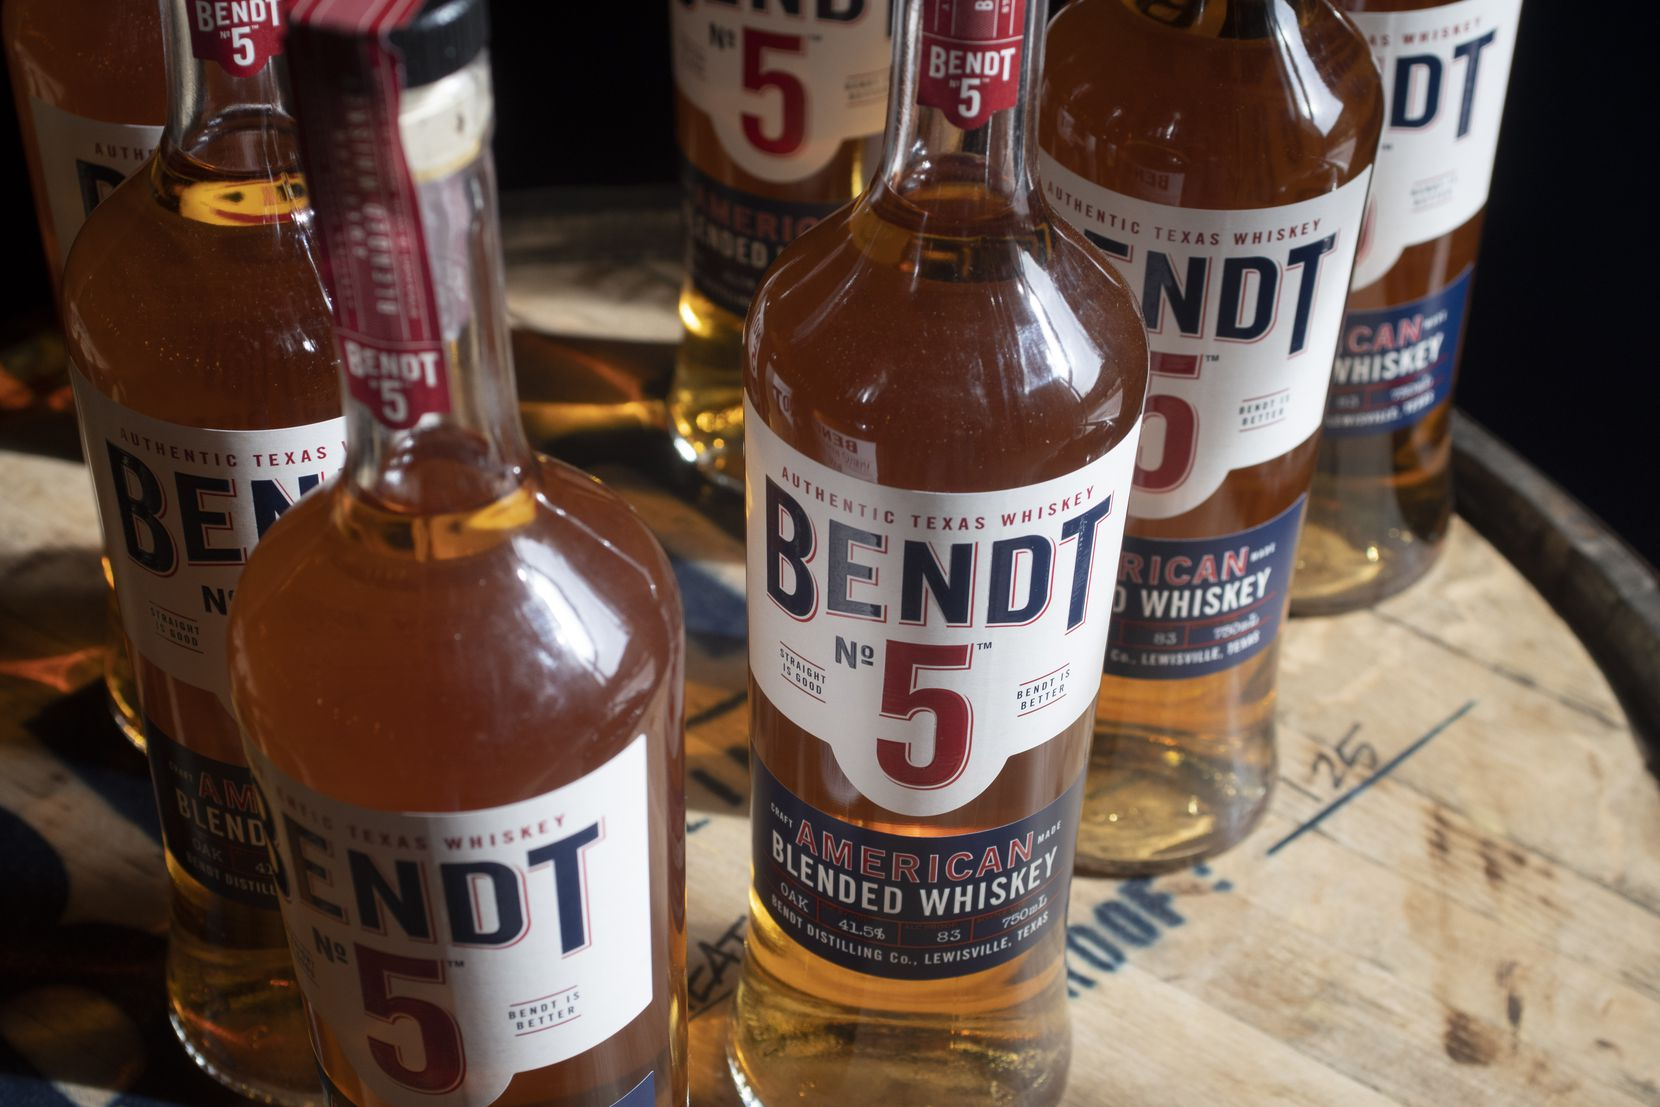 Blended whiskey from Bendt Distilling Co. on Nov. 13, 2019 in Lewisville, Texas.